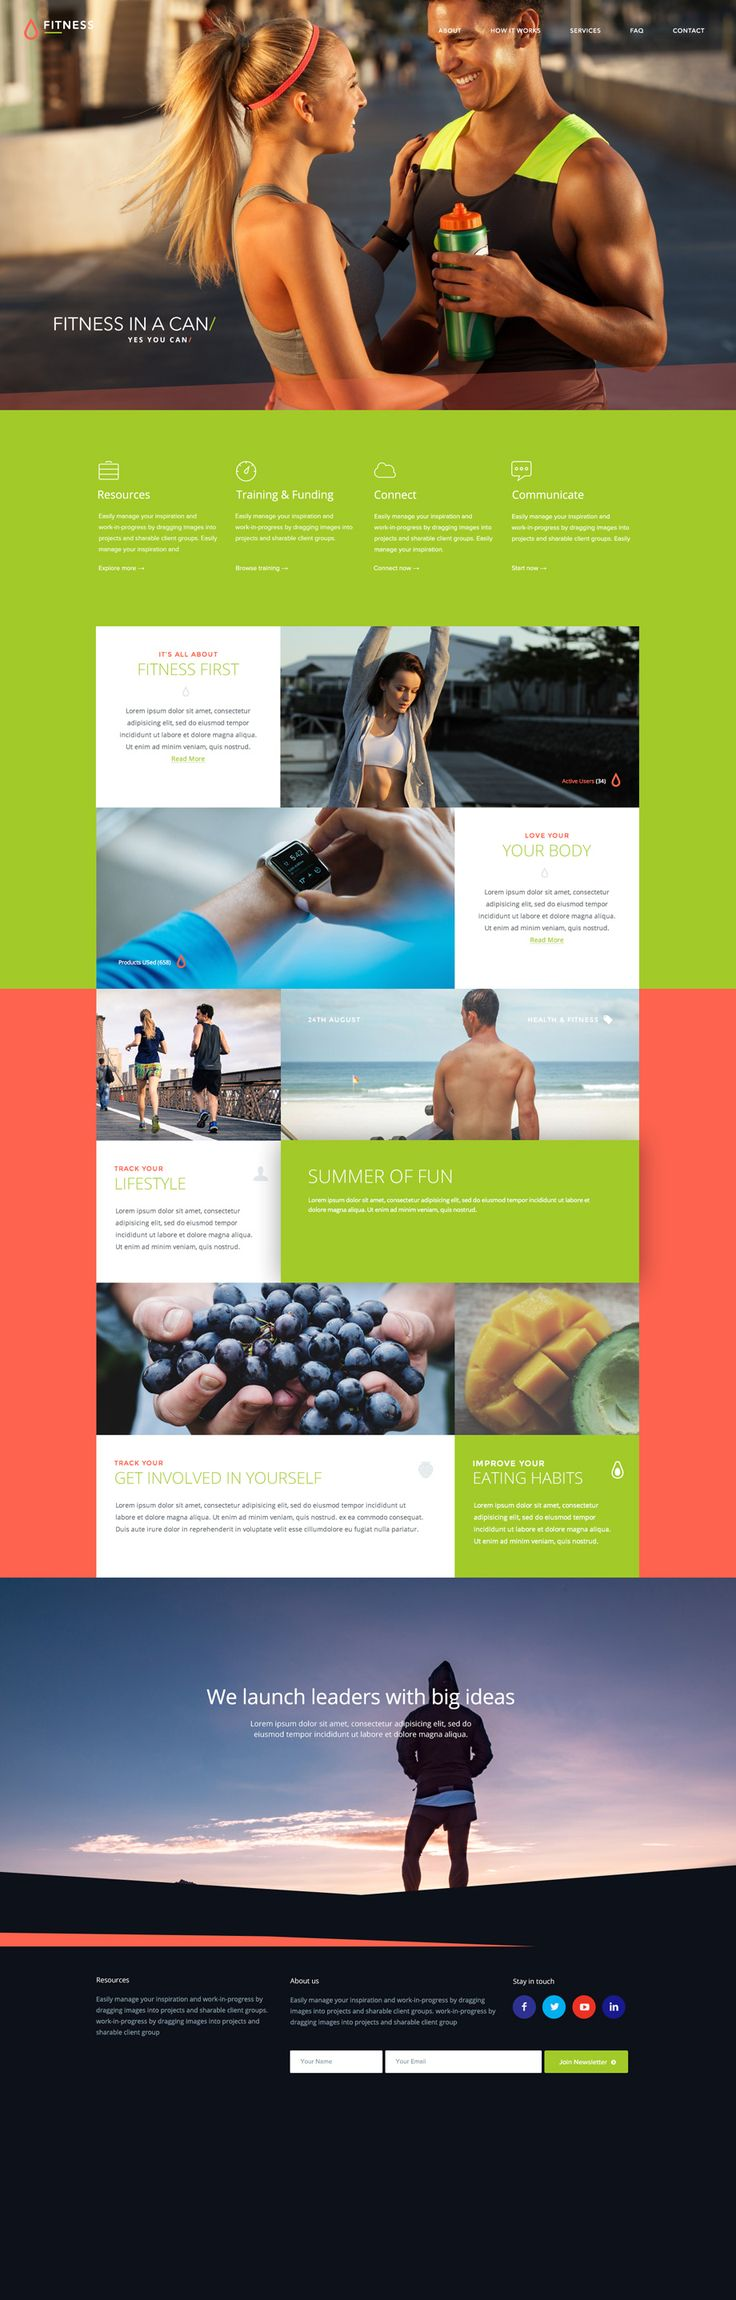 Fitness free Photoshop PSD template 114 best